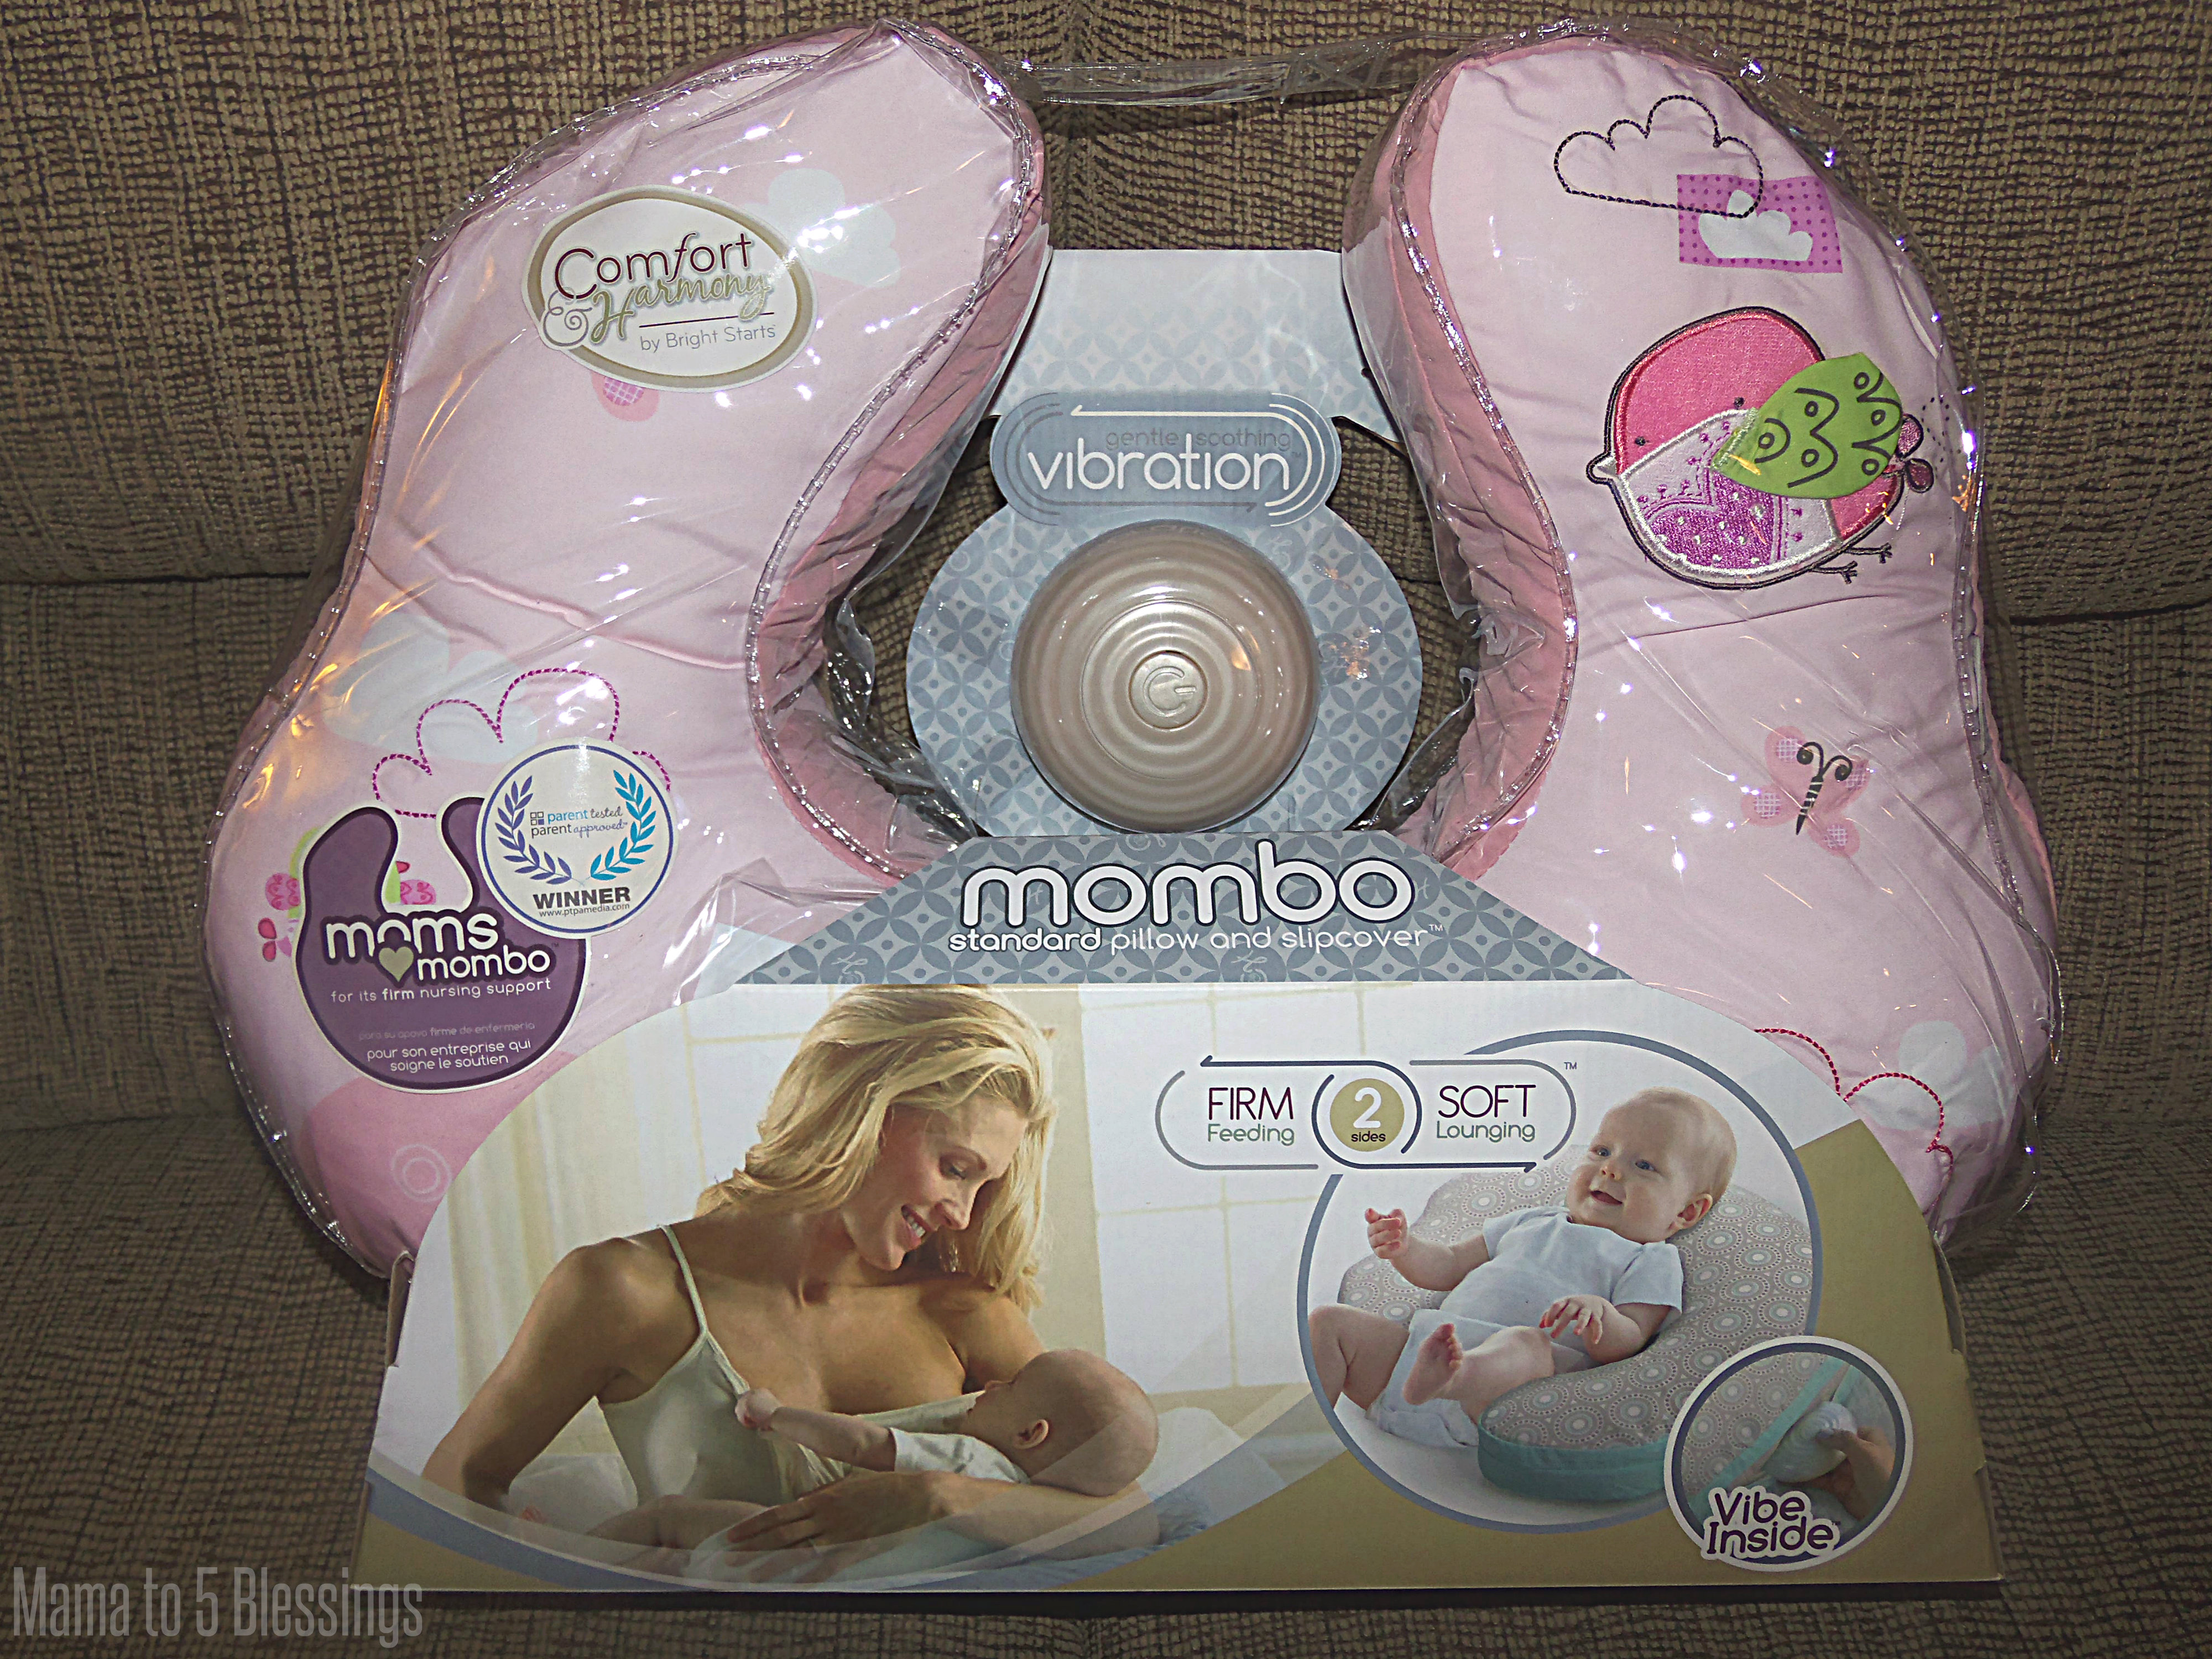 Feed Baby In Comfort With The Mombo Nursing Pillow Review